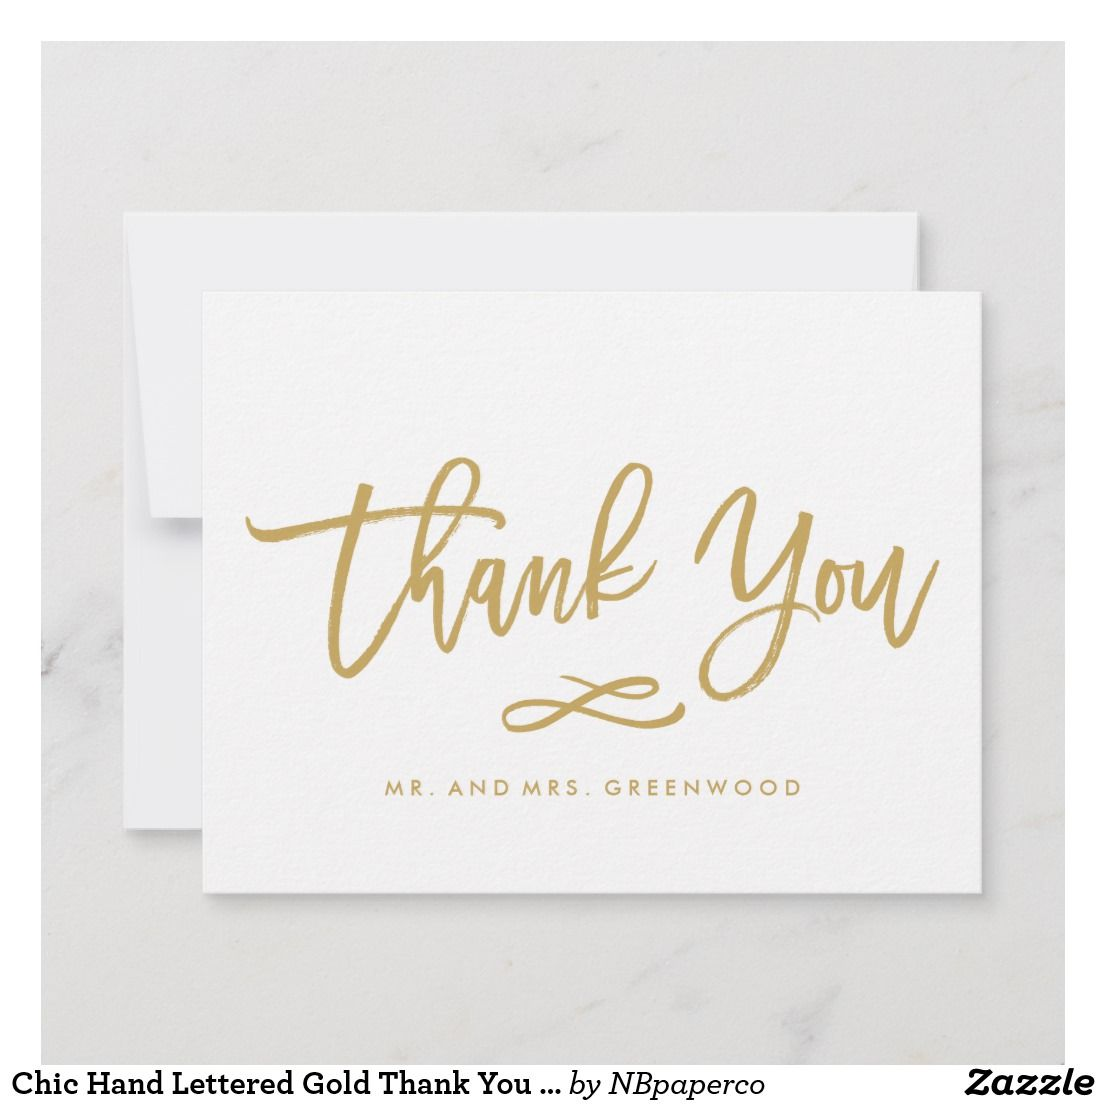 Chic Hand Lettered Gold Thank You Flat Card Zazzle Com